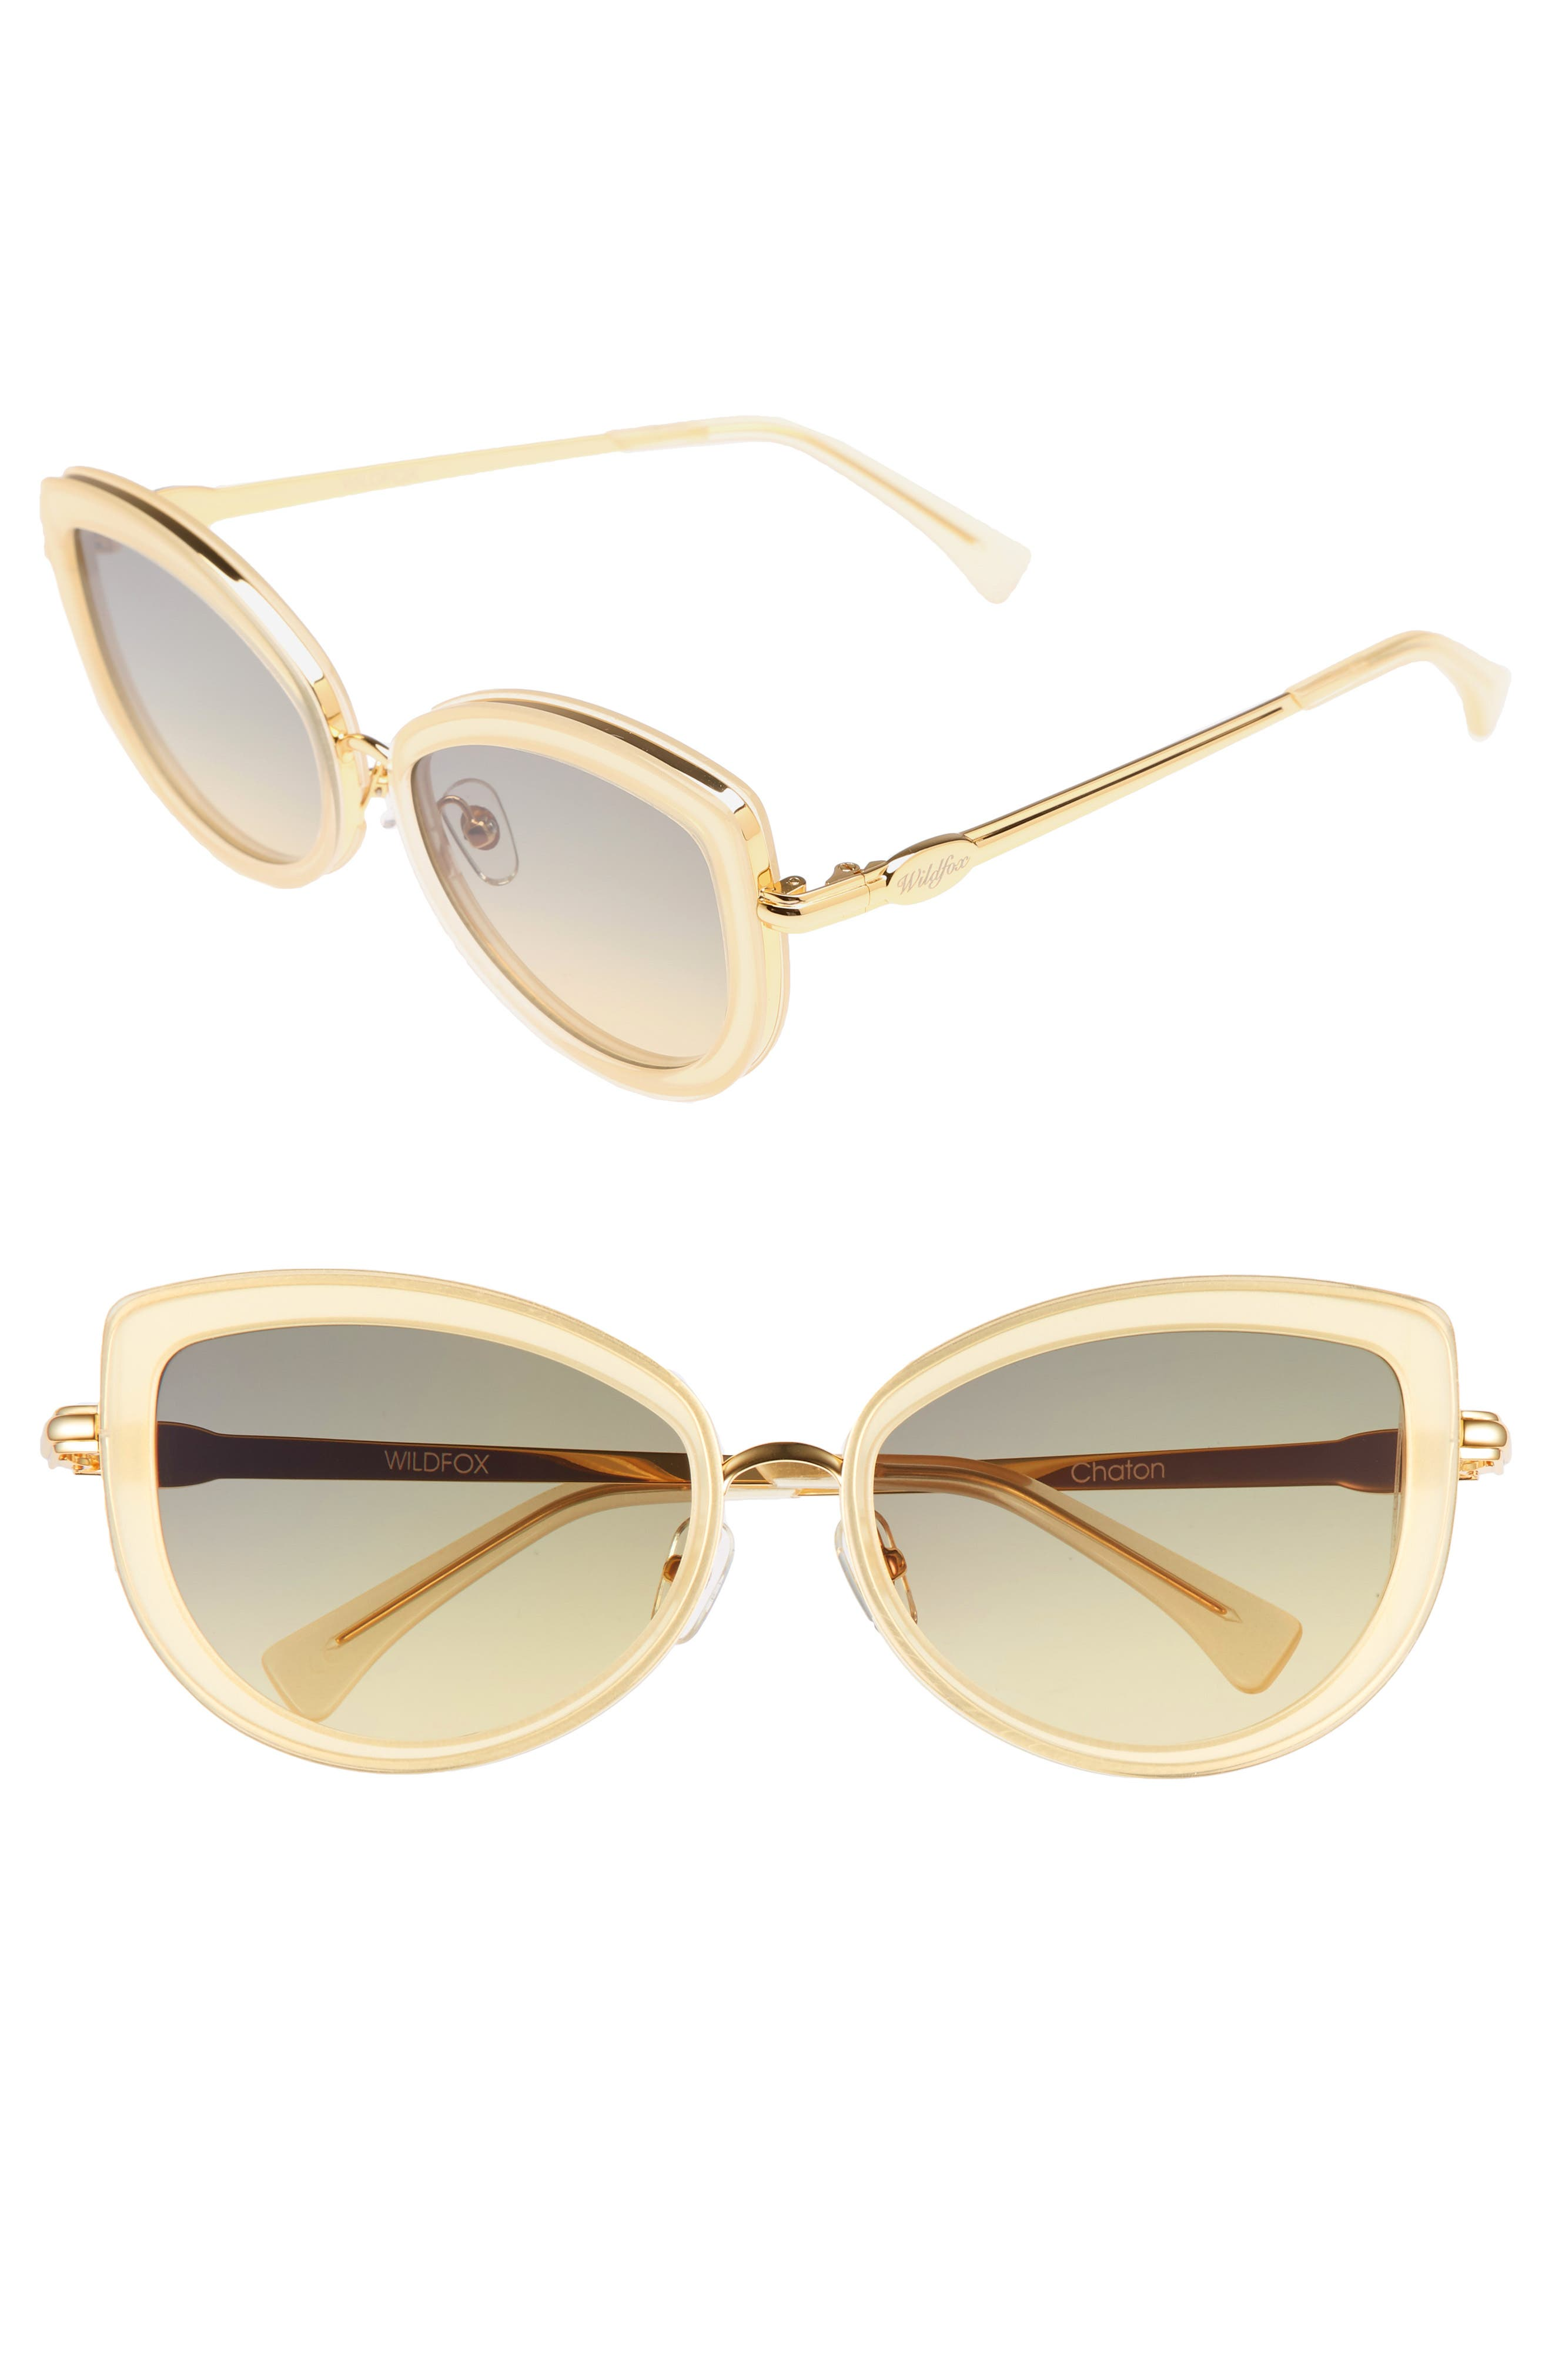 Alternate Image 1 Selected - Wildfox Chaton 54mm Sunglasses